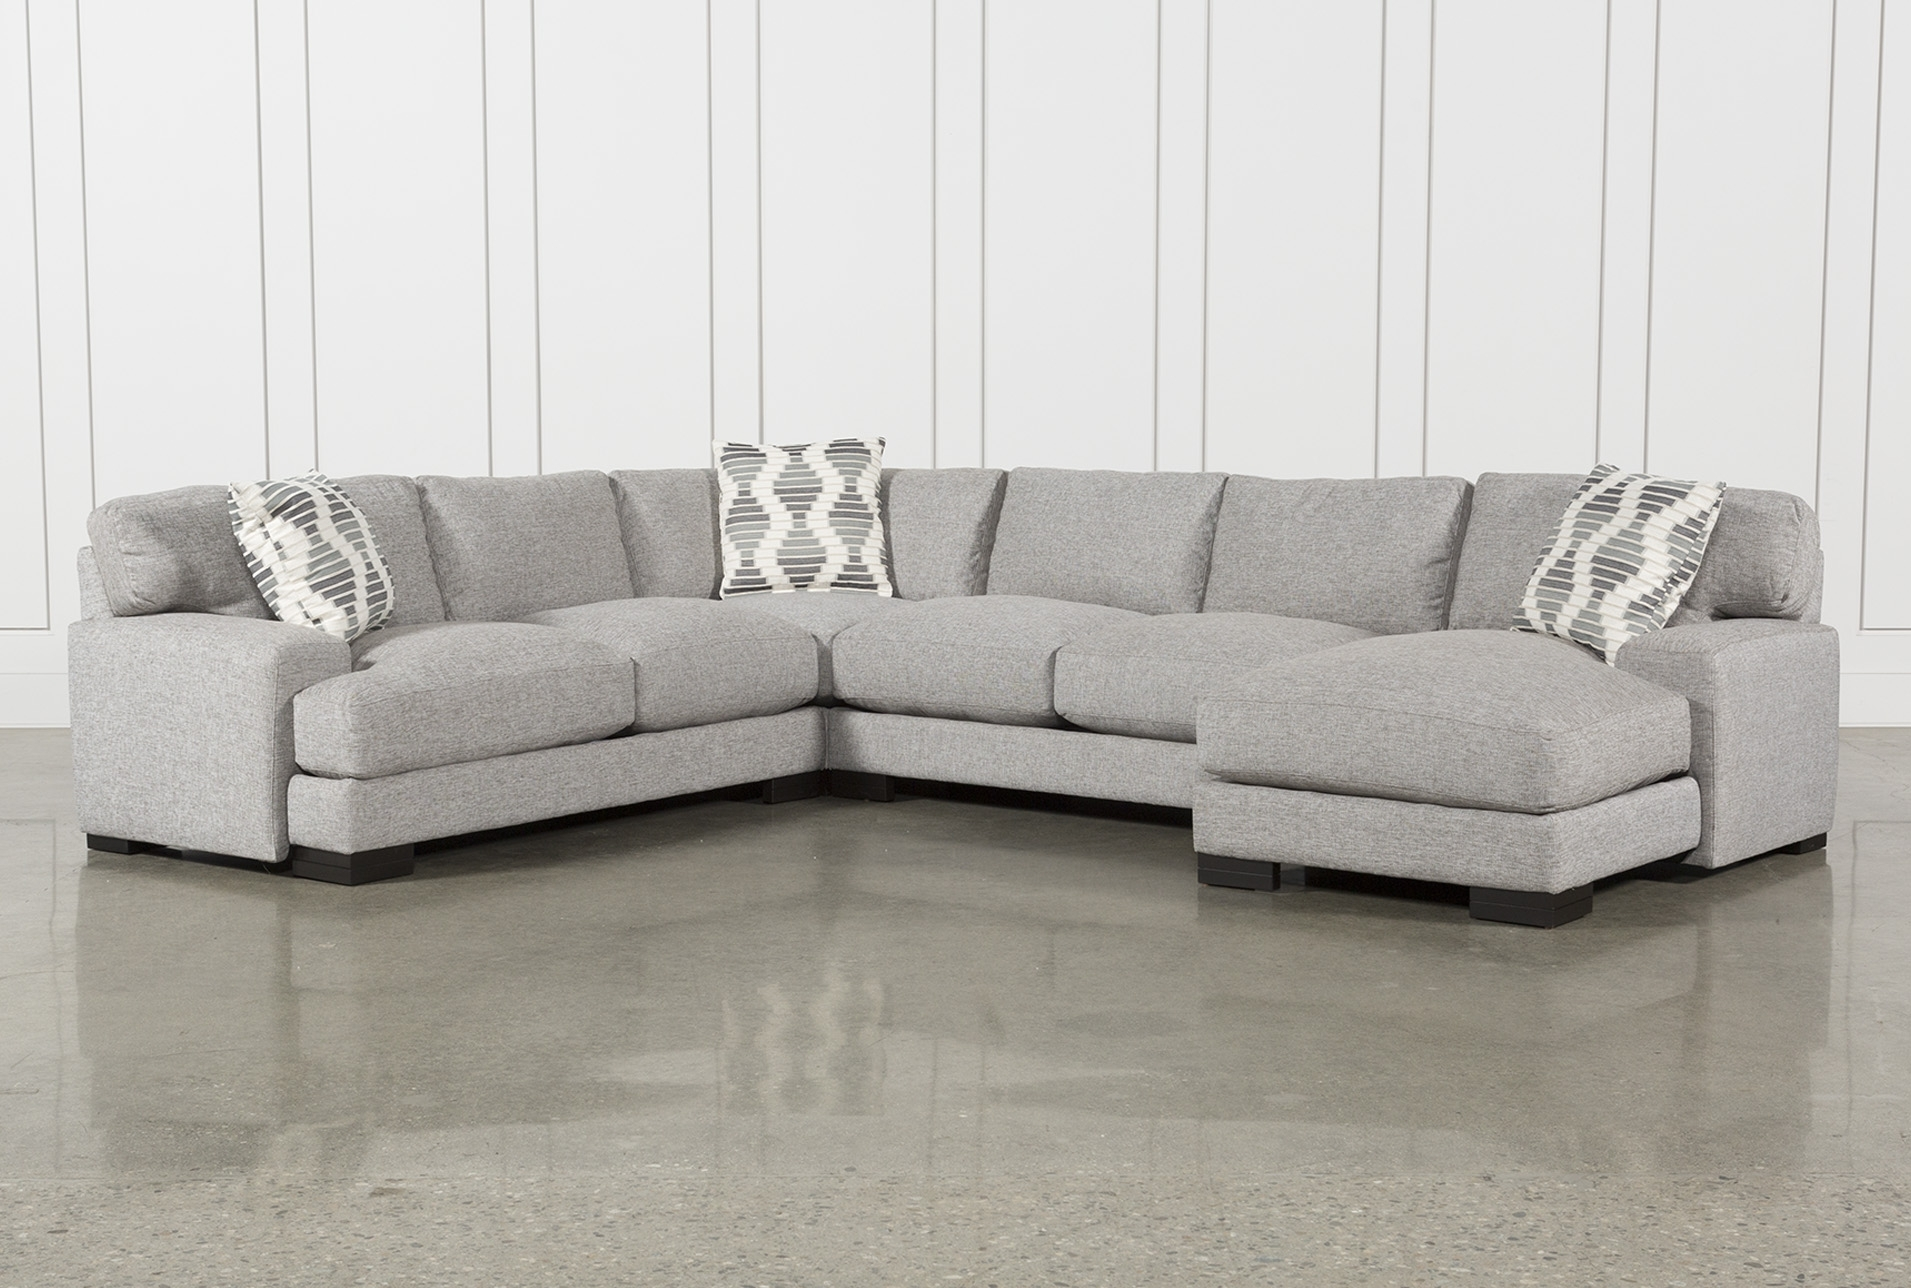 Harper Foam 3 Piece Sectional W/raf Chaise Throughout Harper Foam 3 Piece Sectionals With Raf Chaise (Image 10 of 25)